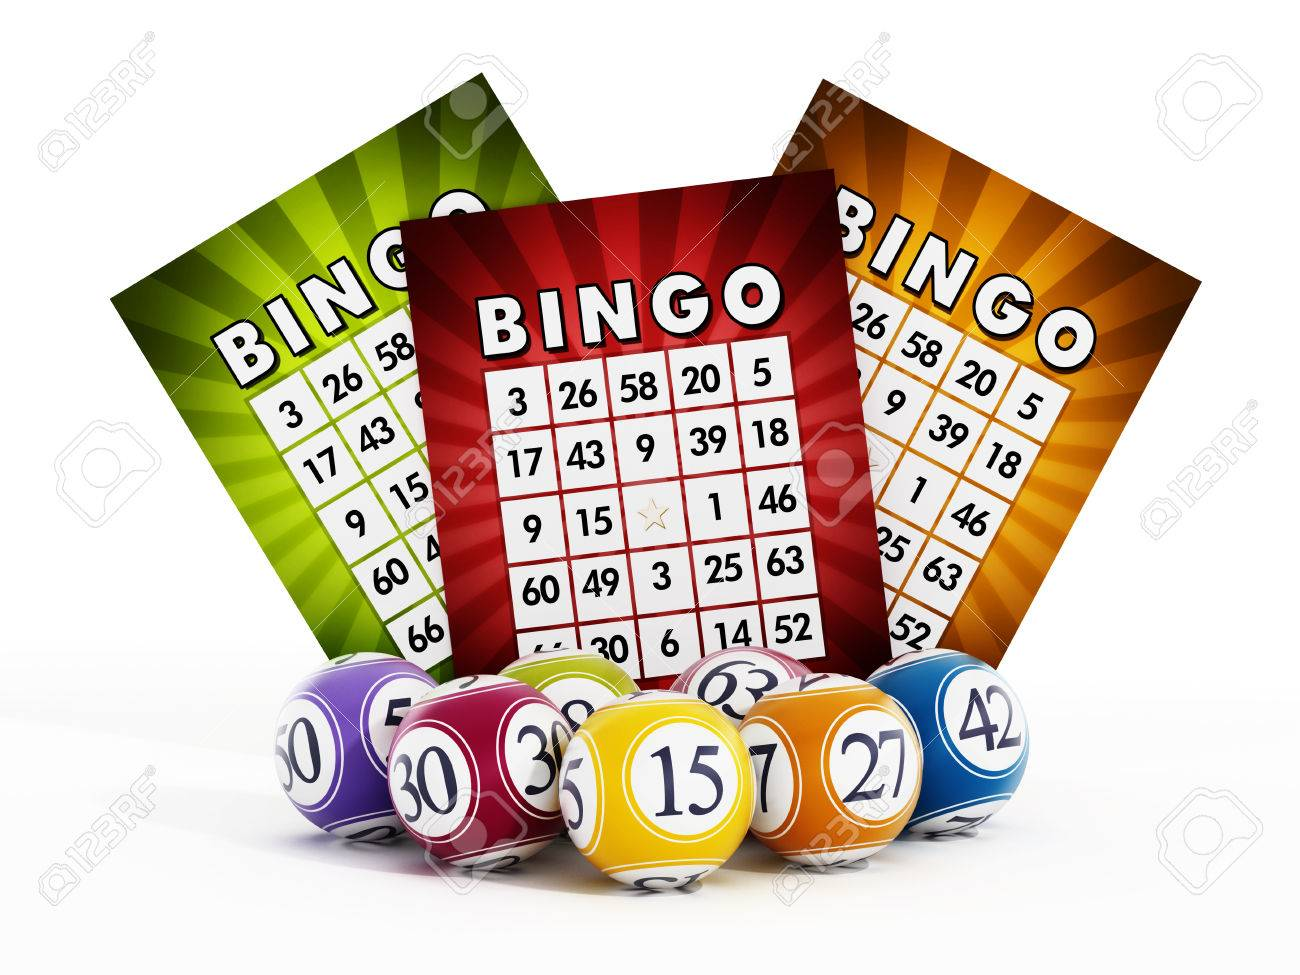 Bingo card and balls with numbers isolated on white background Stock Photo - 48053002